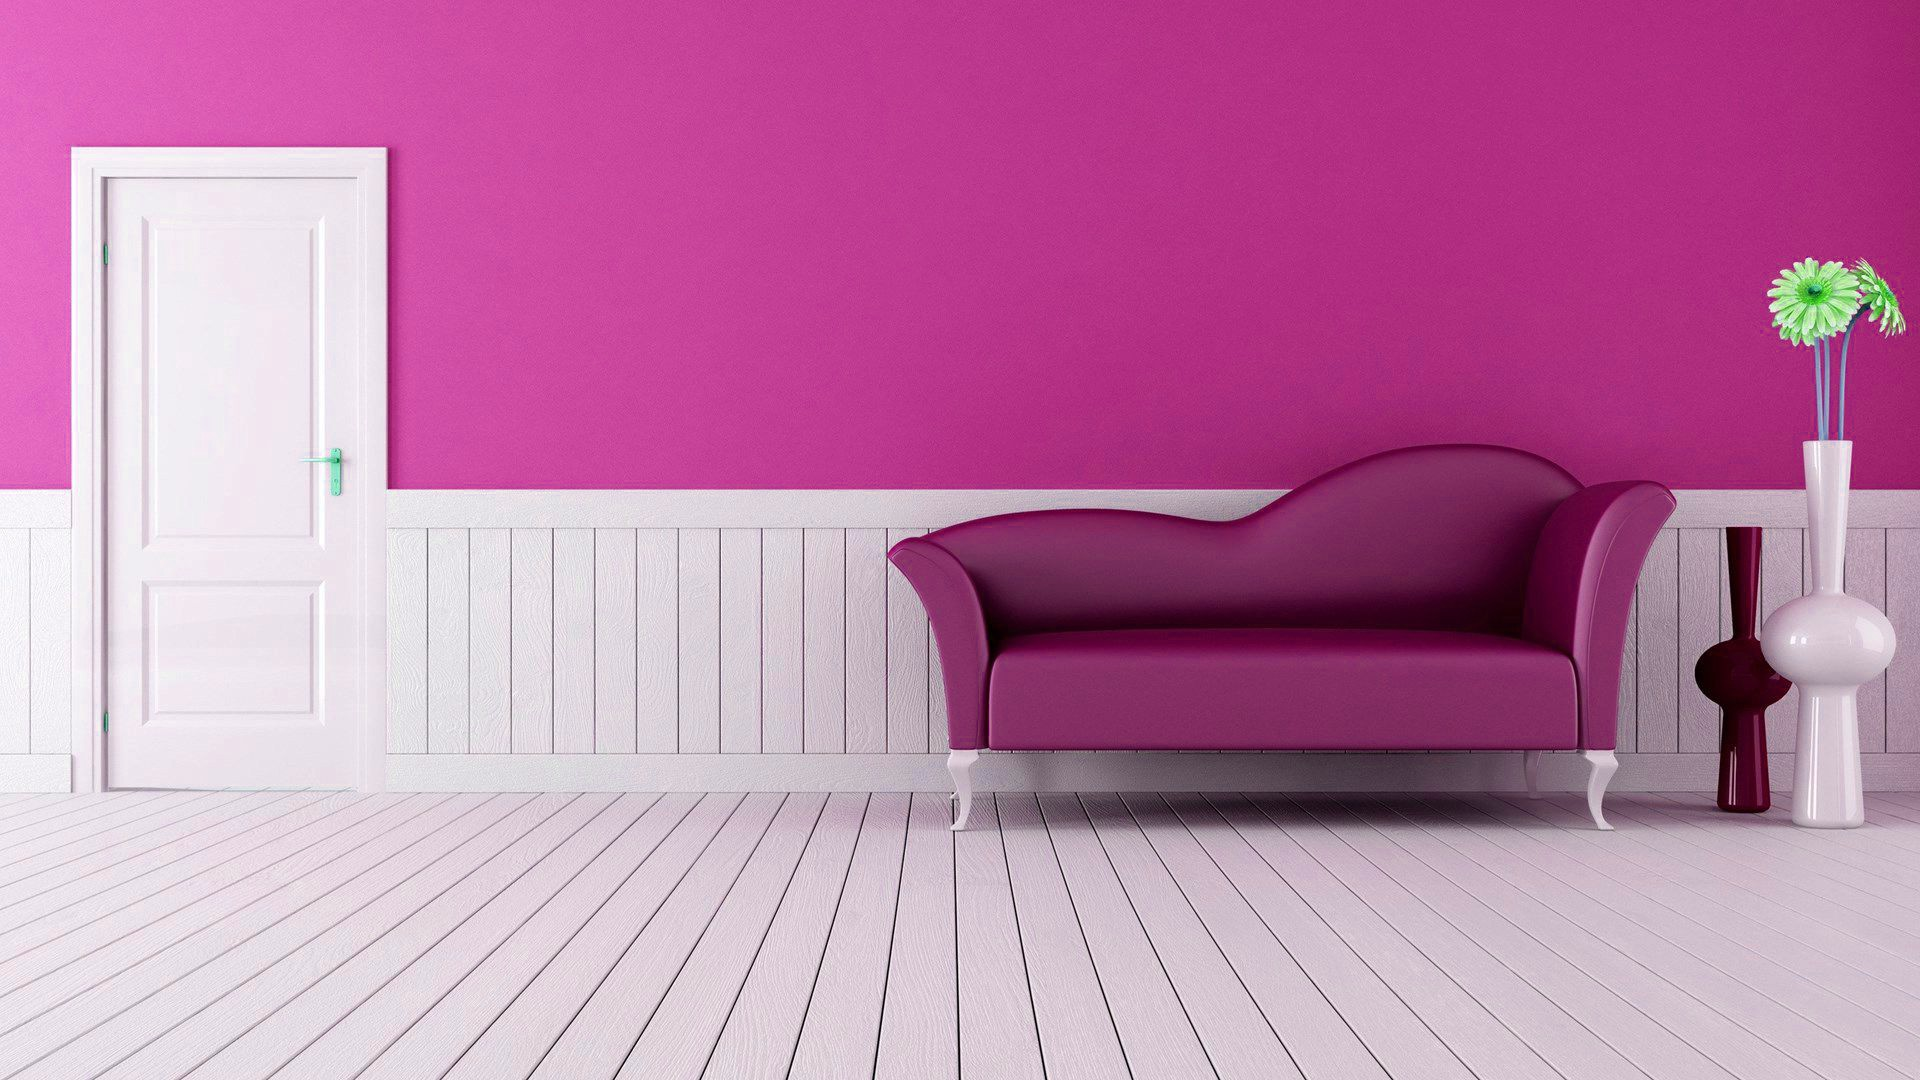 modern-sofa-pink-interior-hd-wallpaper-hdwlp-com_how-to-find-an-interior-designer_country-interior-design-architect-designer-plan-for-house-room-magazin-at-imterior-home-and-dec